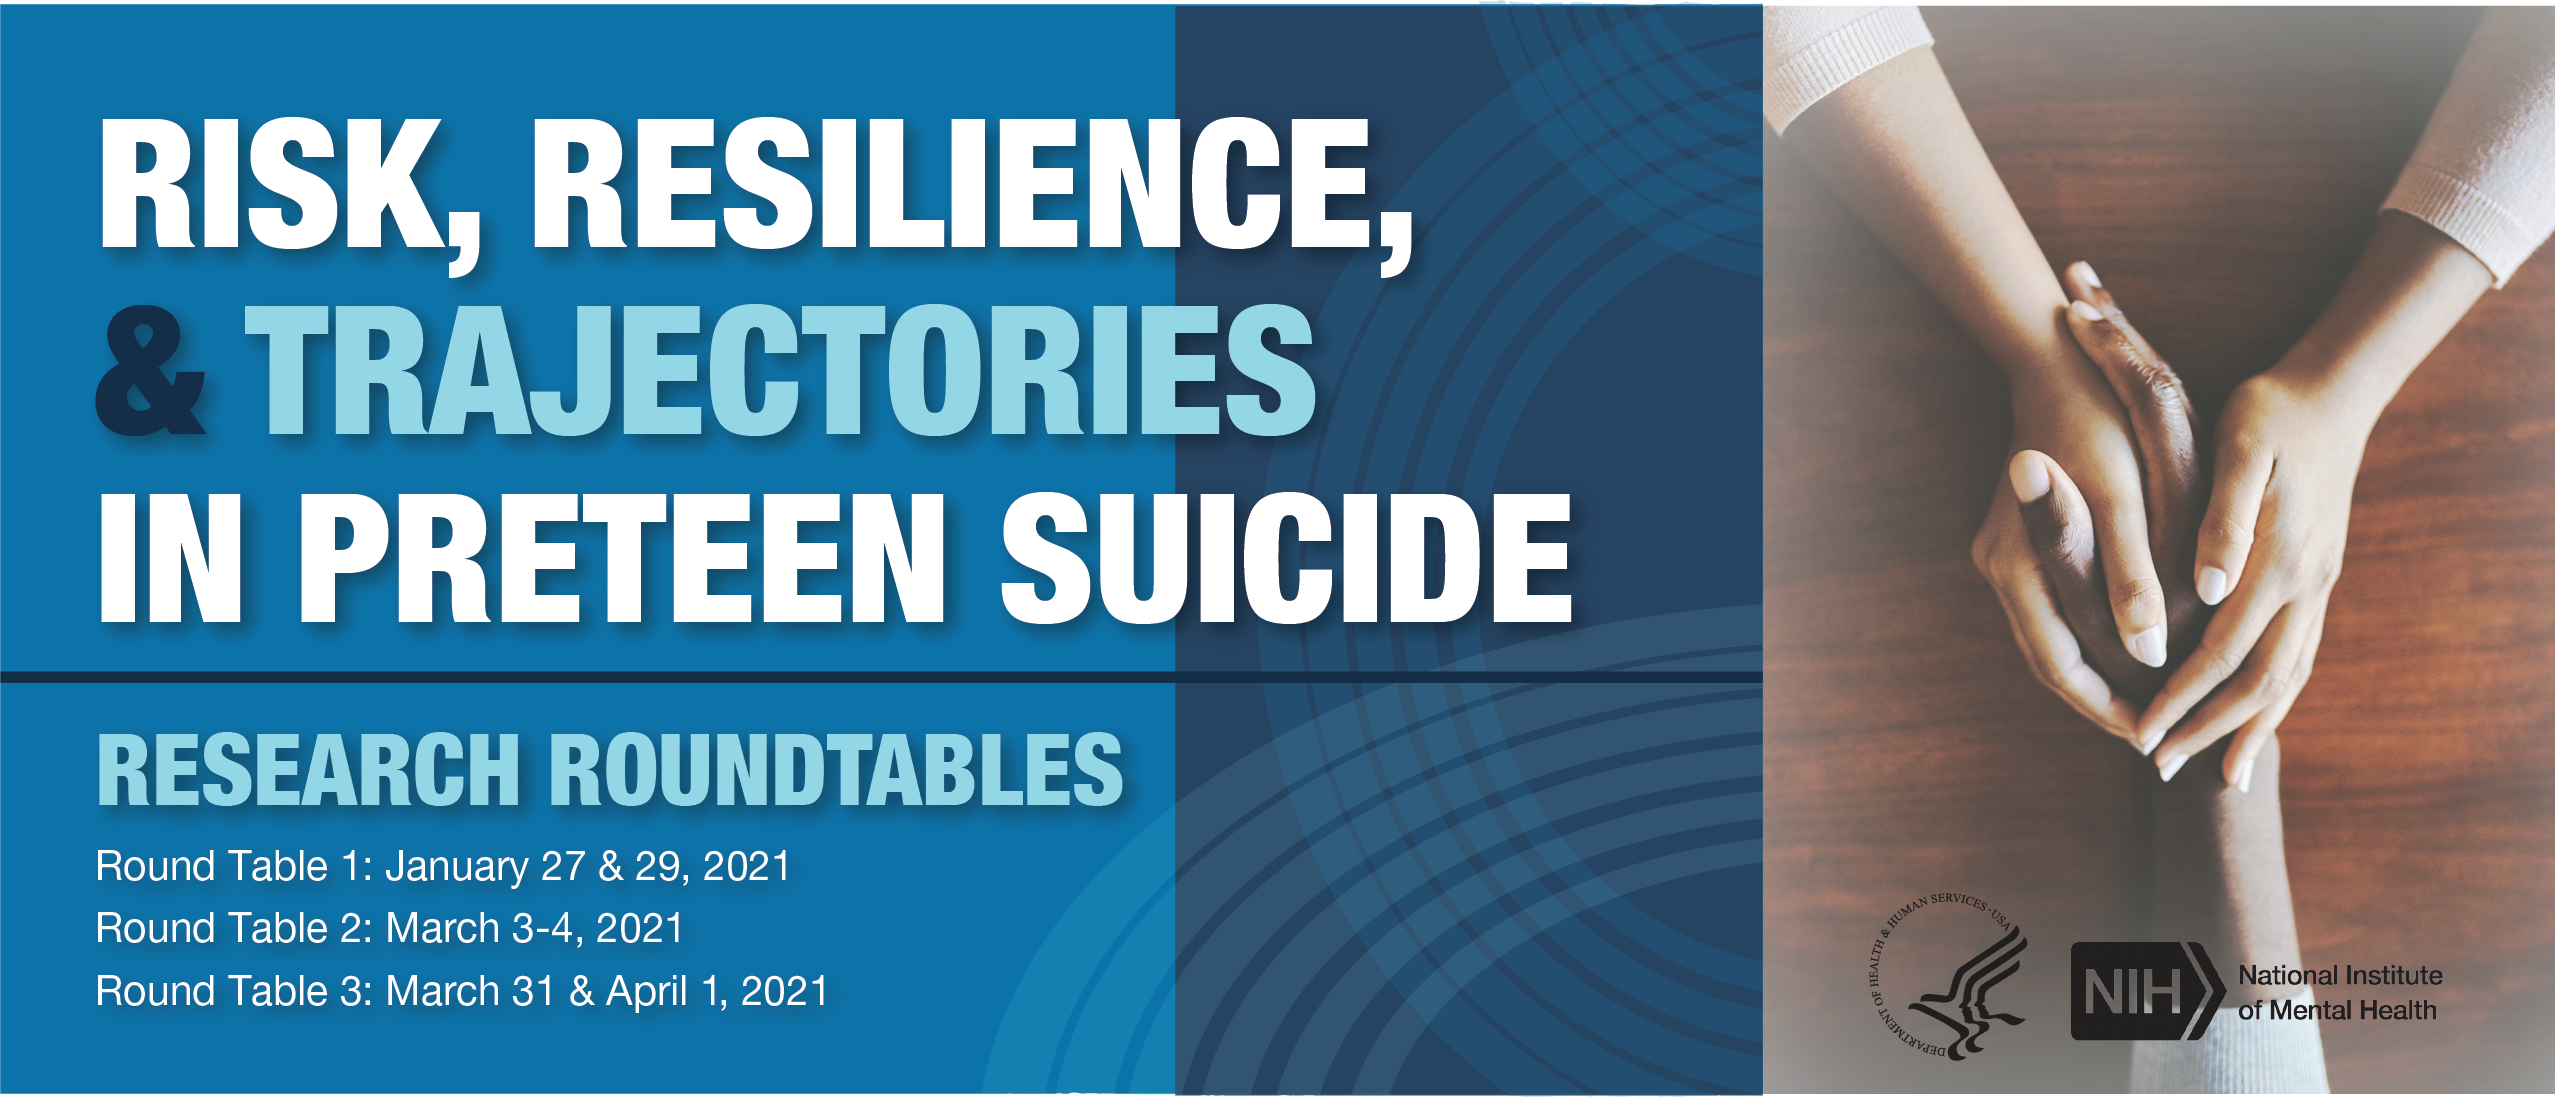 NIMH Risk, resilence, and tragectories in preteen suicide webinar banner